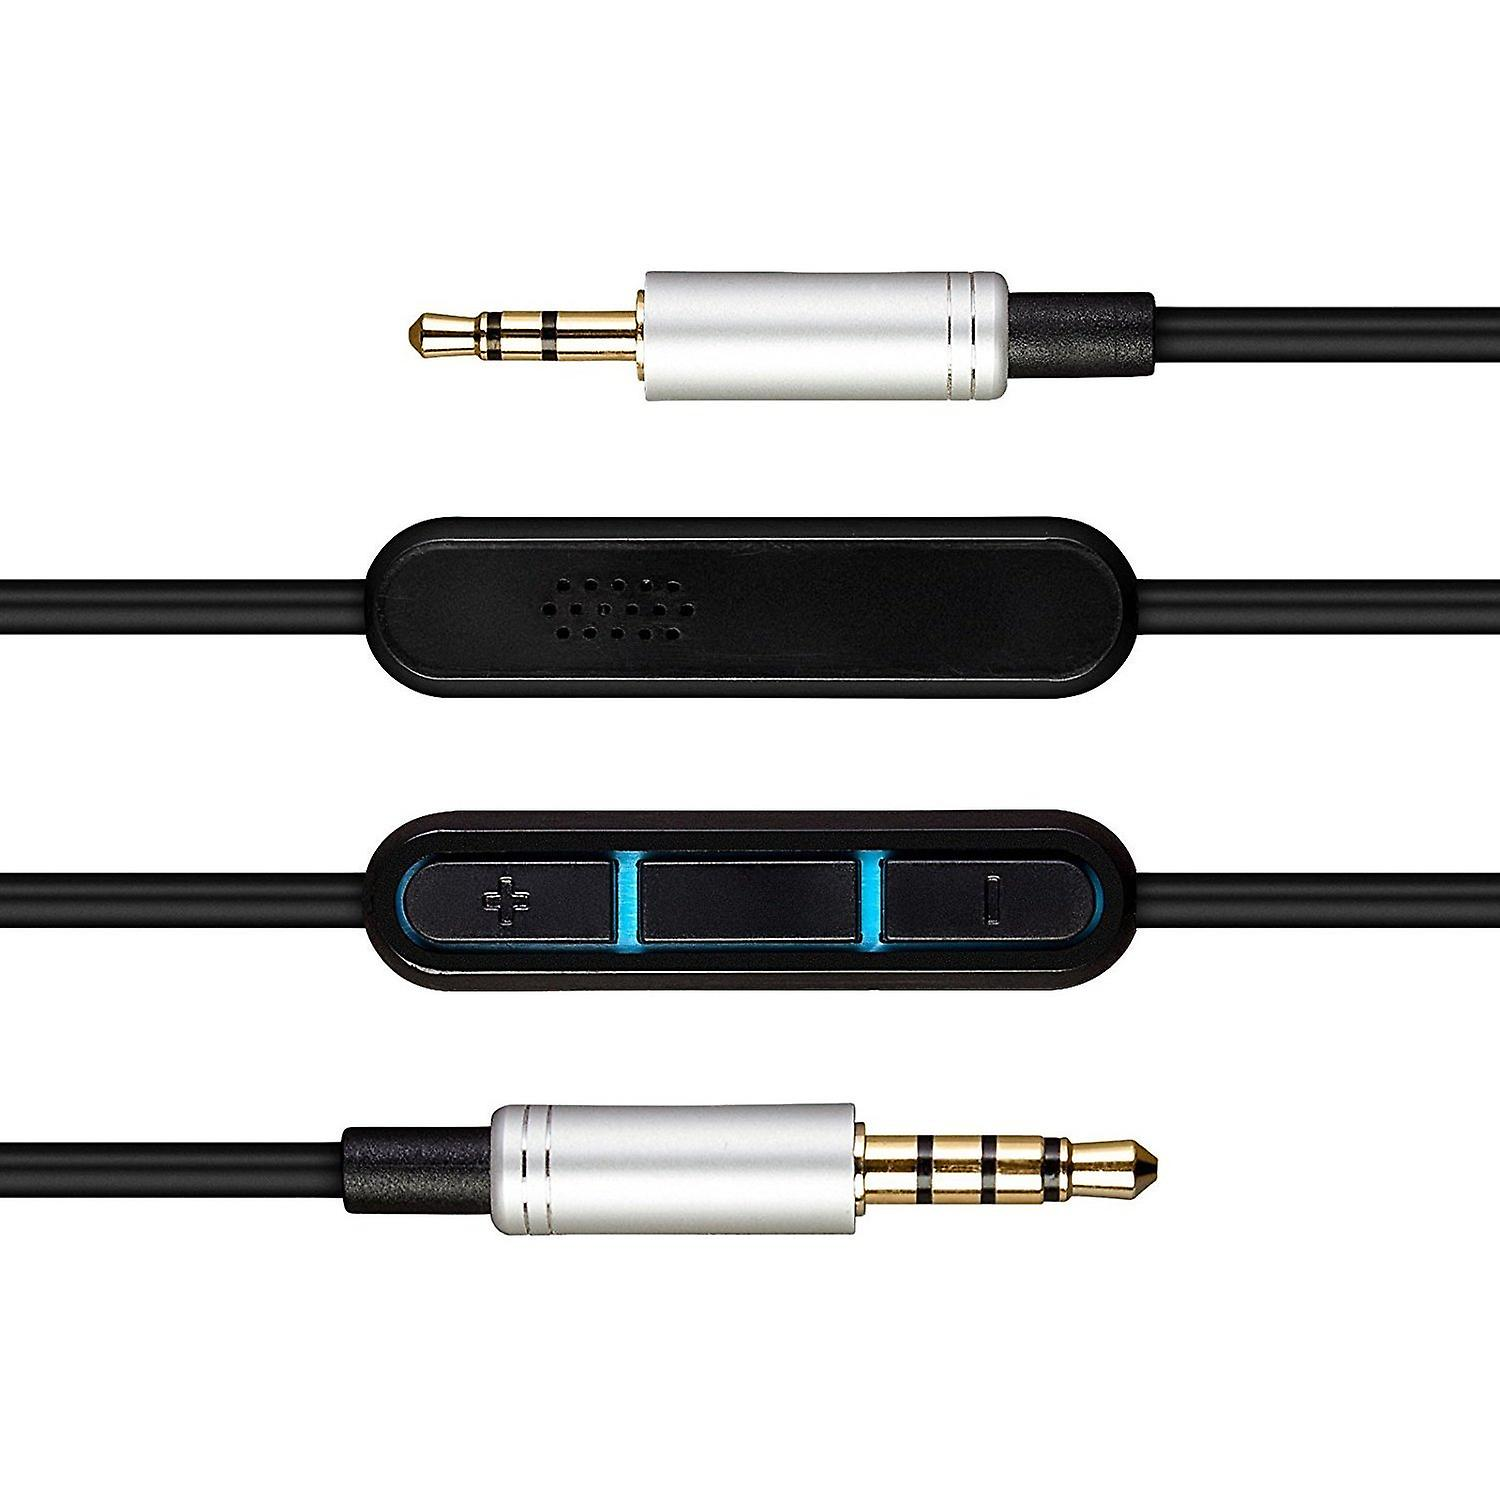 Bose 1.5m Replacement Gold Plated Cable For Bose SoundLink Headphone